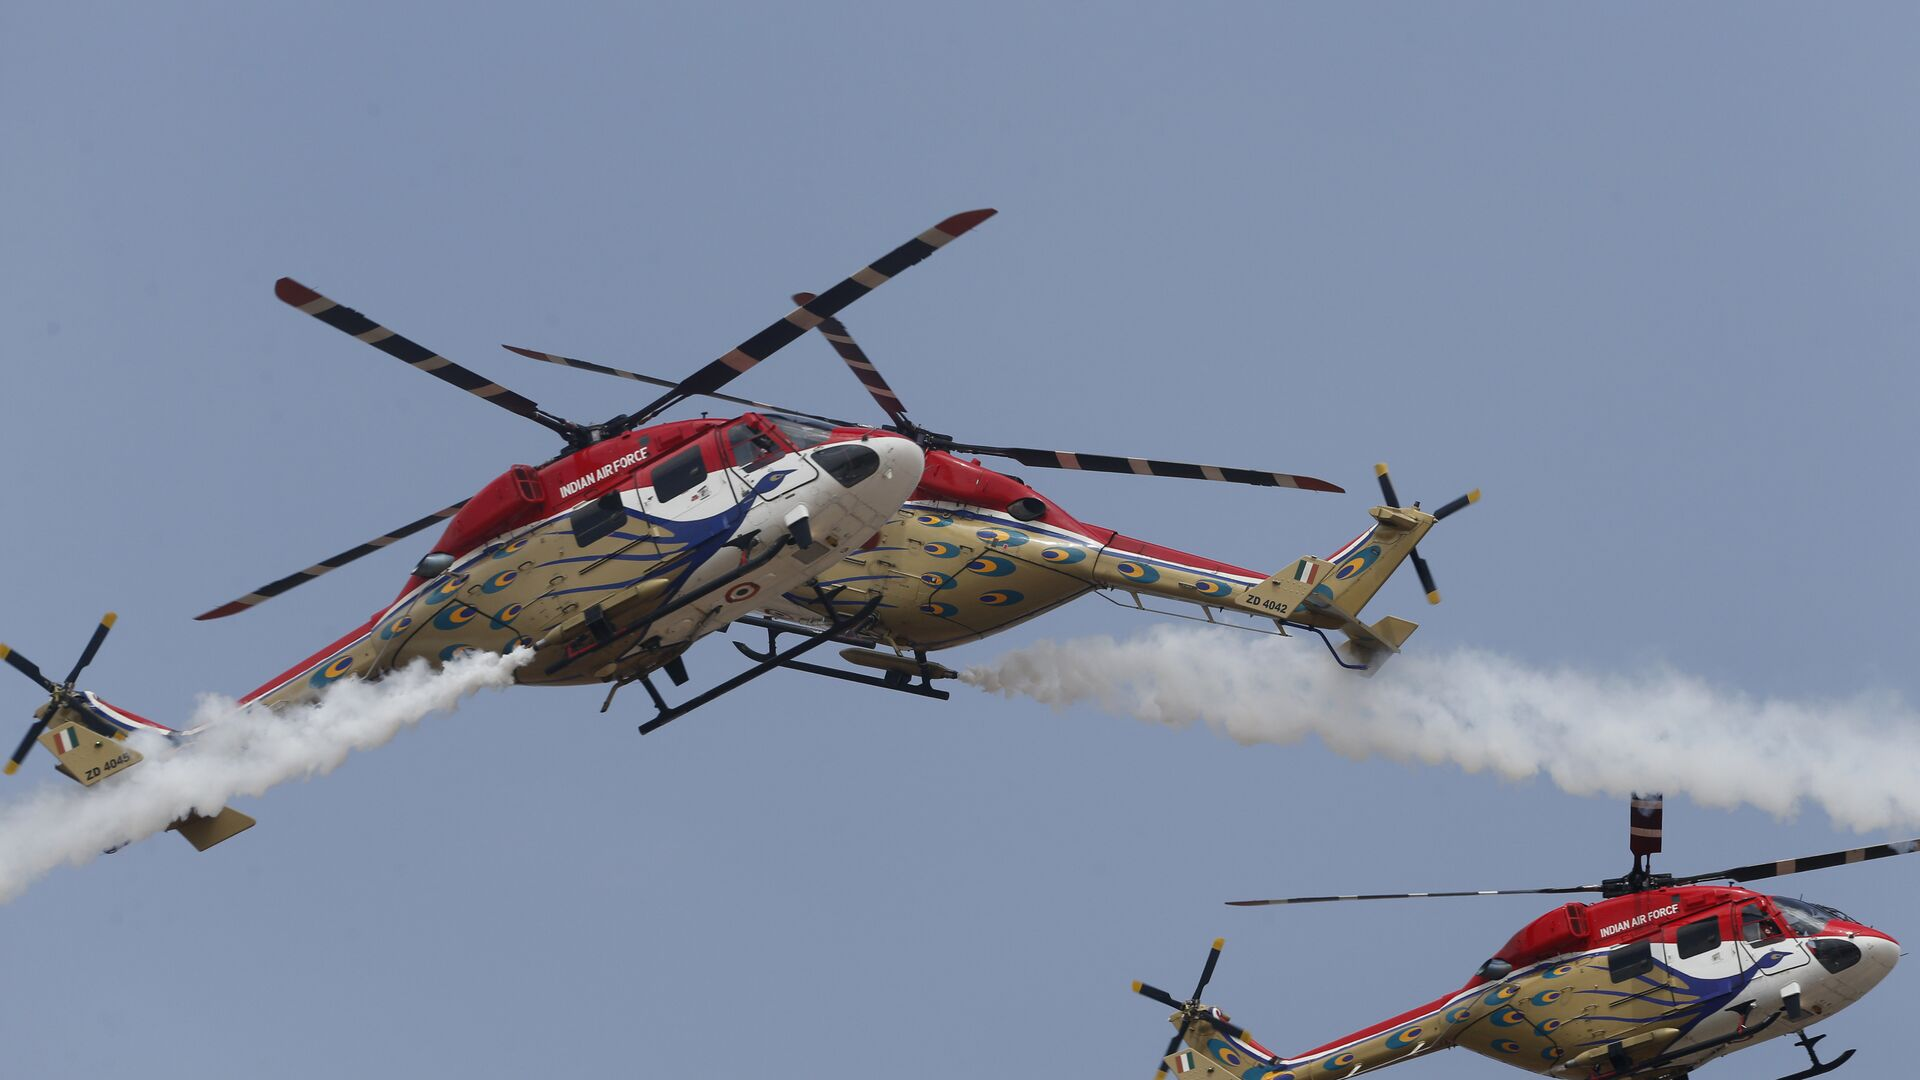 Indigenously manufactured Indian Air Force Dhruv helicopters perform at the opening ceremony of Aero India 2017 at Yelahanka air base in Bangalore, India, Tuesday, Feb. 14, 2017 - Sputnik Mundo, 1920, 06.10.2021